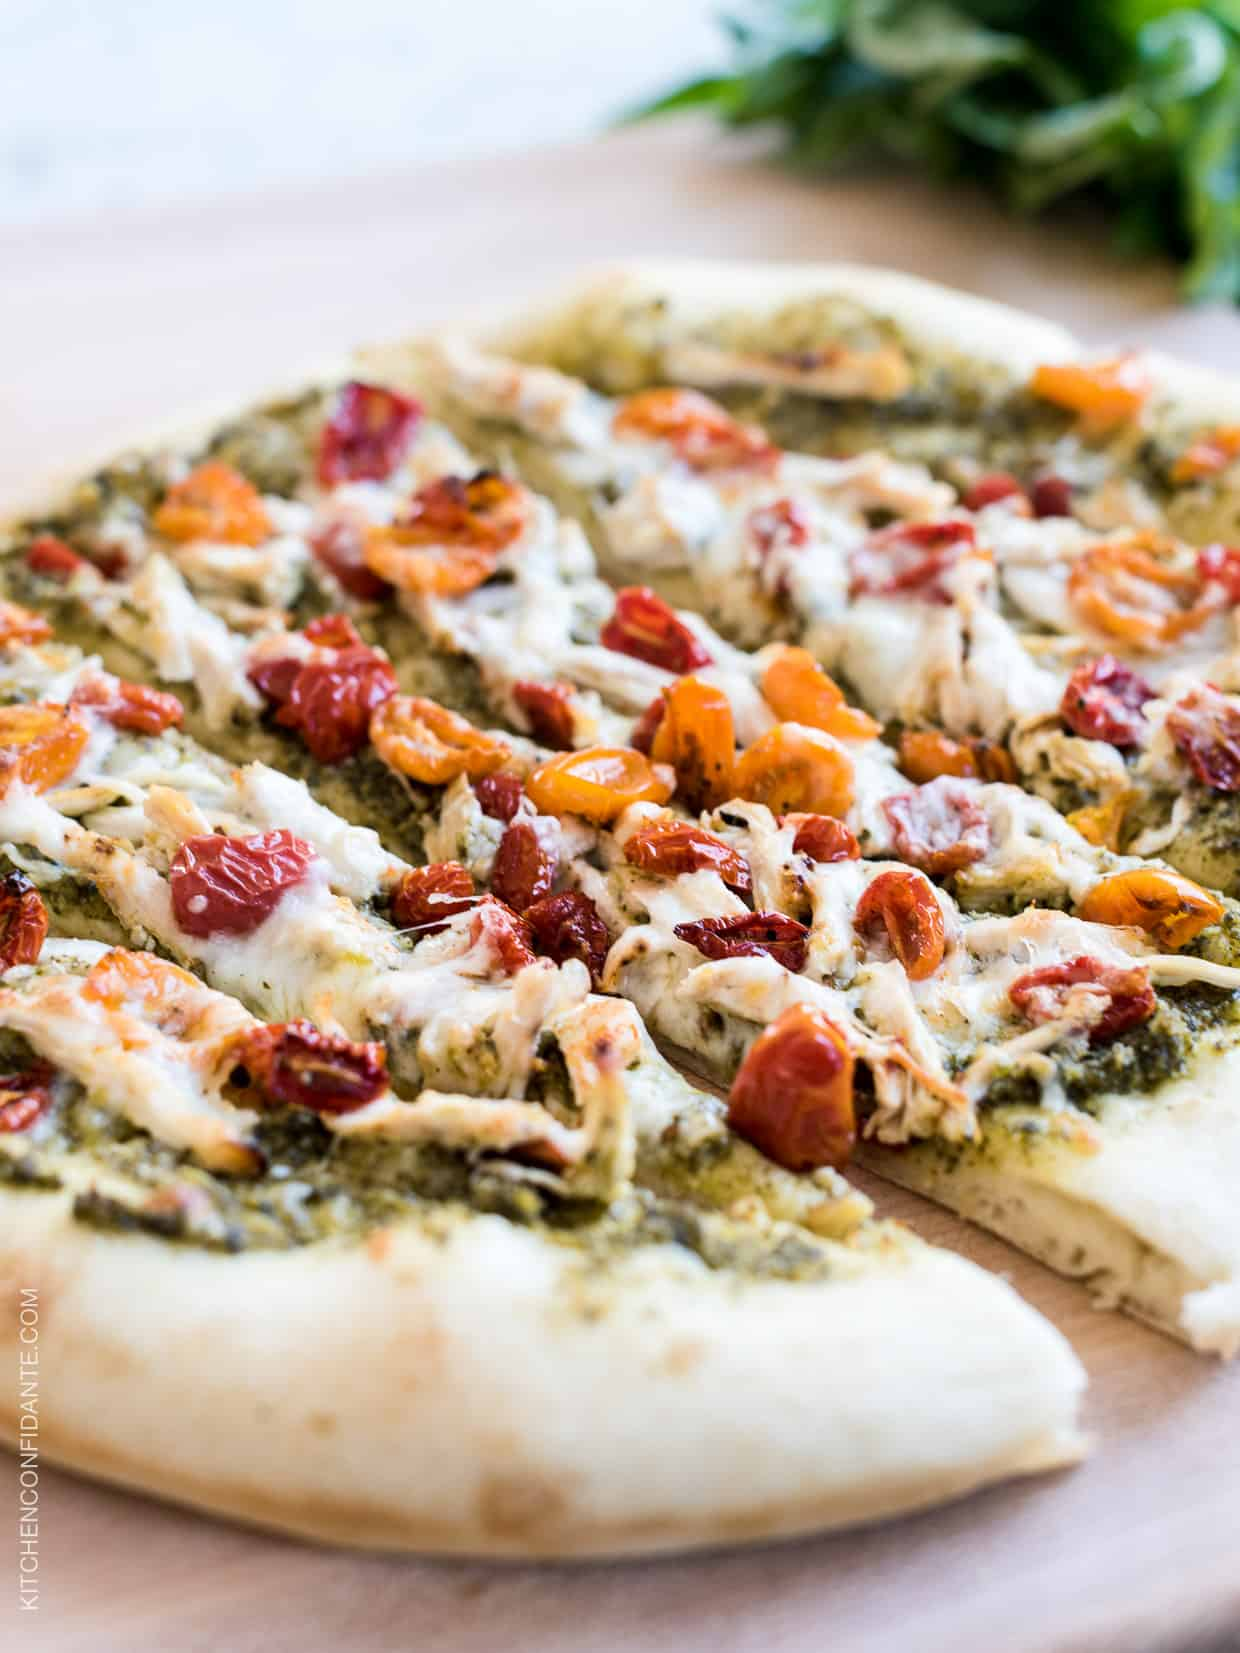 Chicken Pesto Pizza bakes in a snap, thanks to freezer-friendly shortcuts! Keep a batch of pizza dough and toppings in the freezer, and dinner is ready in minutes. You can even prep and freeze the whole pizza for the busiest of weeknights!